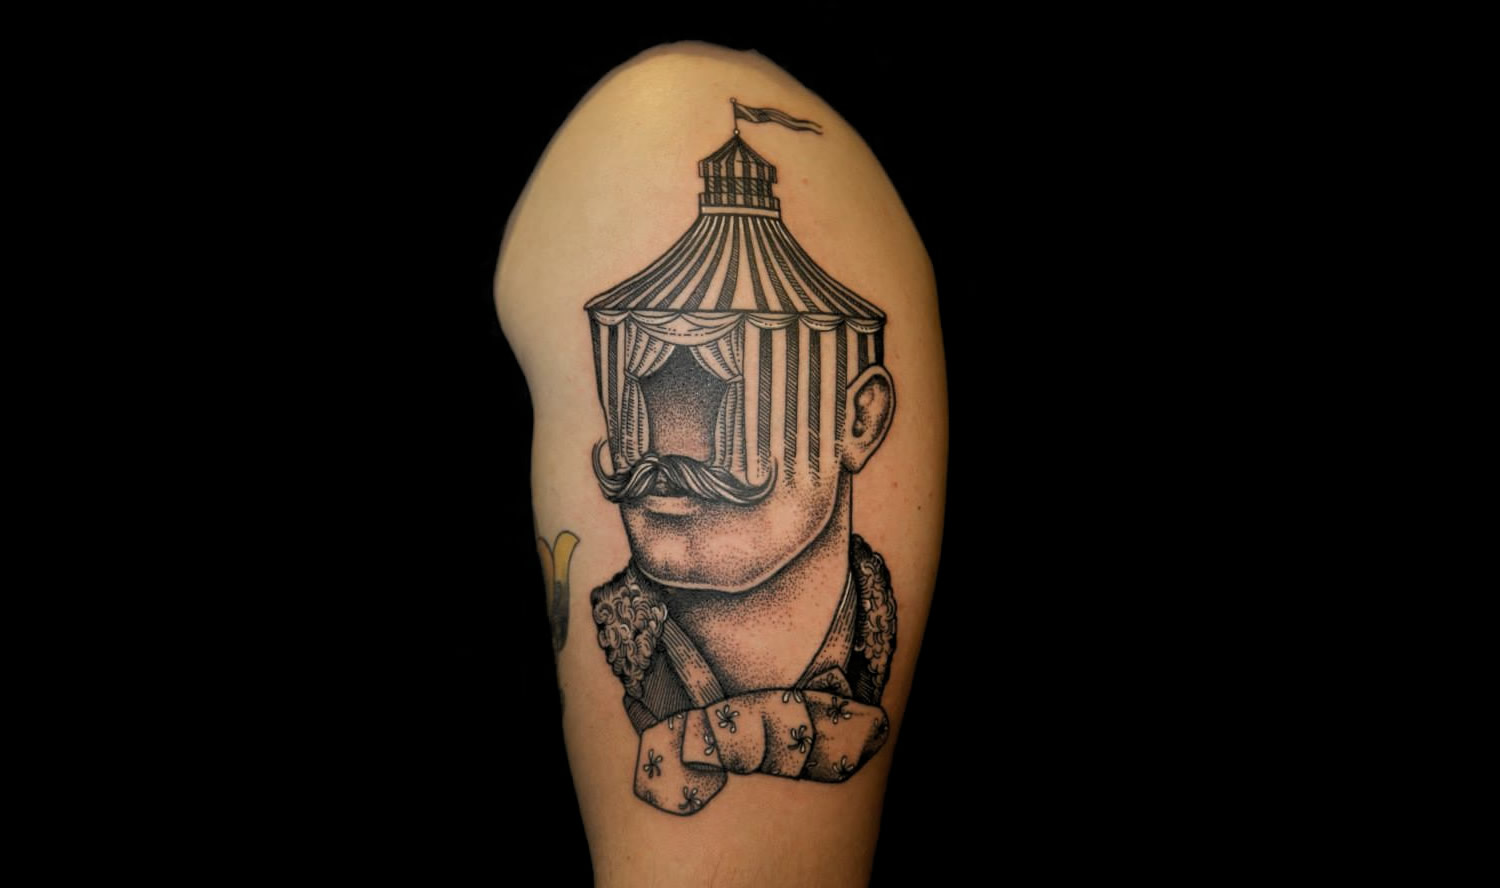 circus face moustache man (tent) tattoo by pietro sedda, italy.